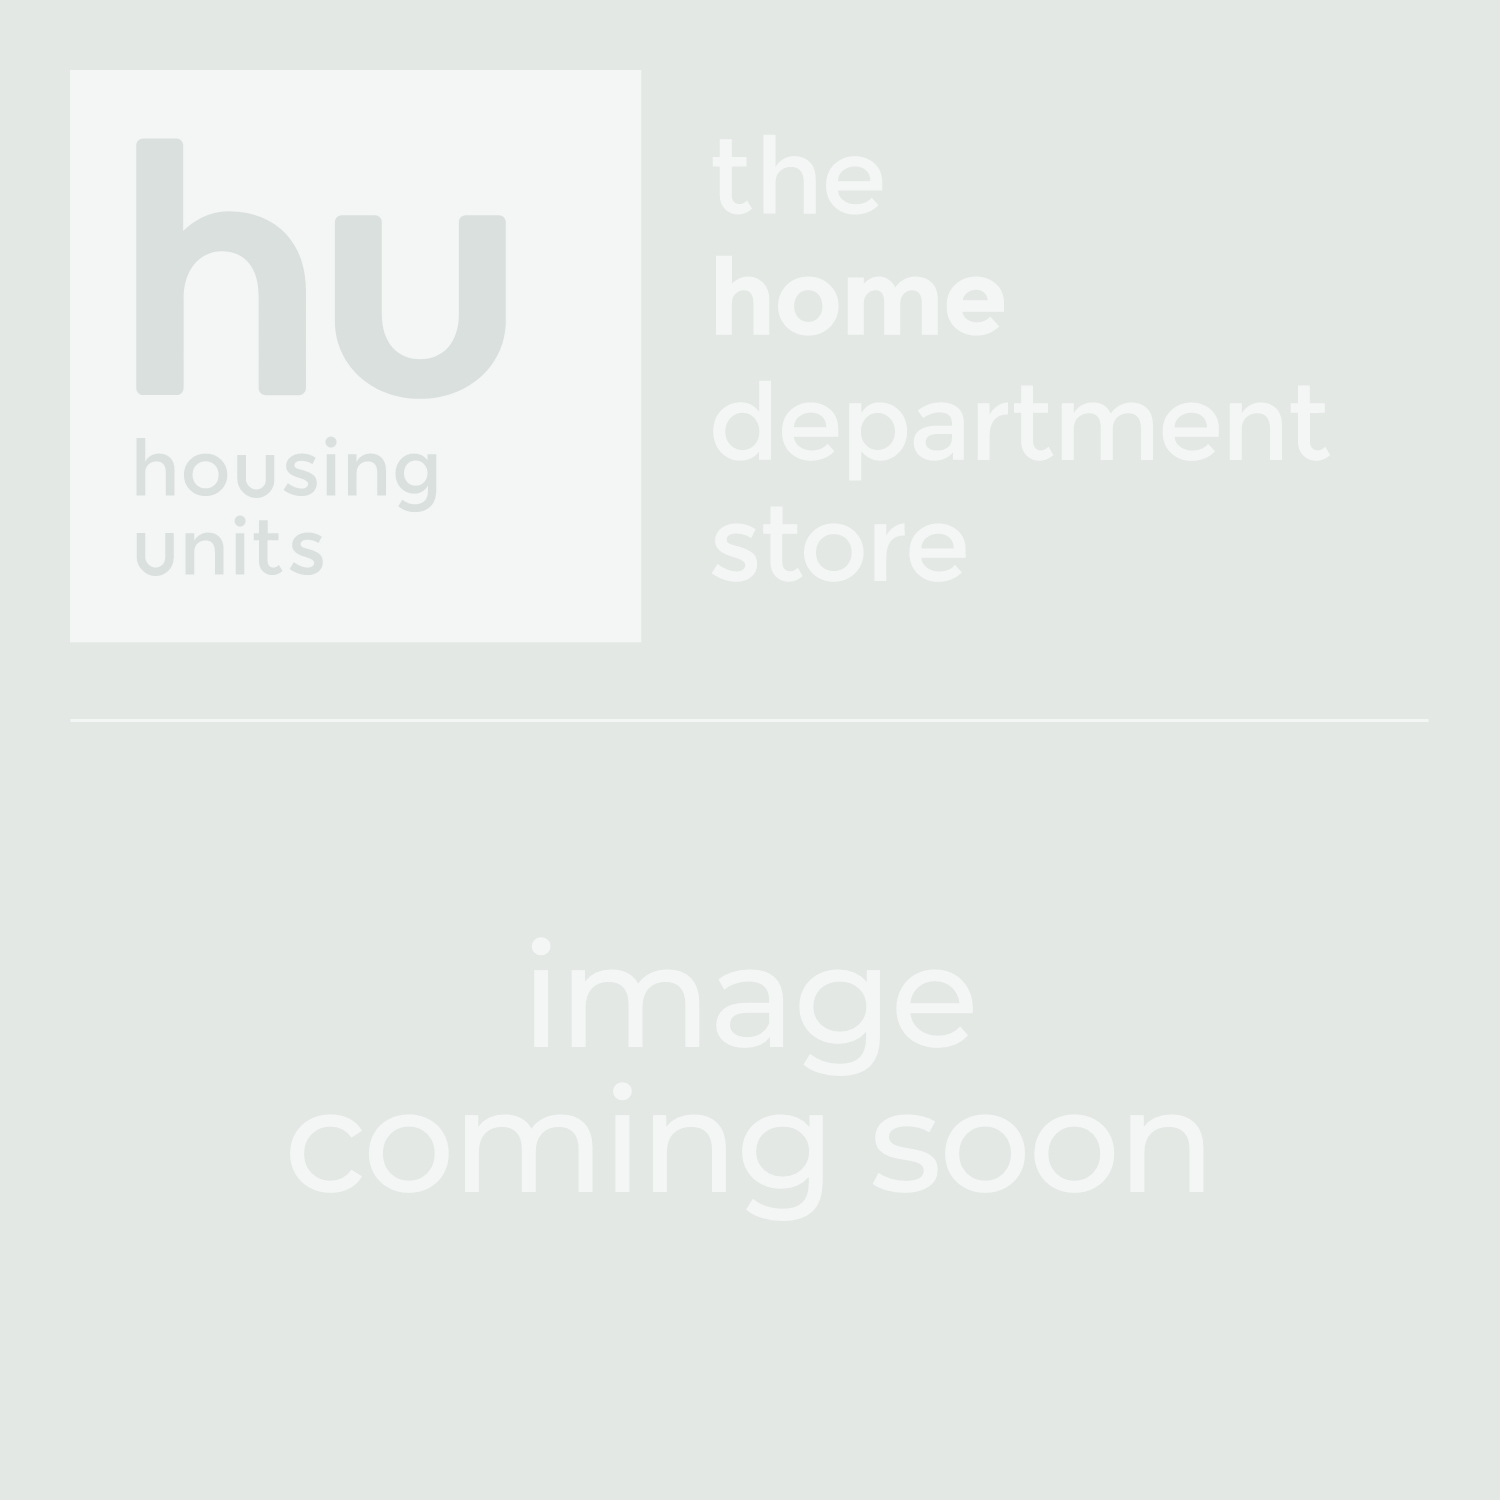 Duckling holding green umbrella ornament